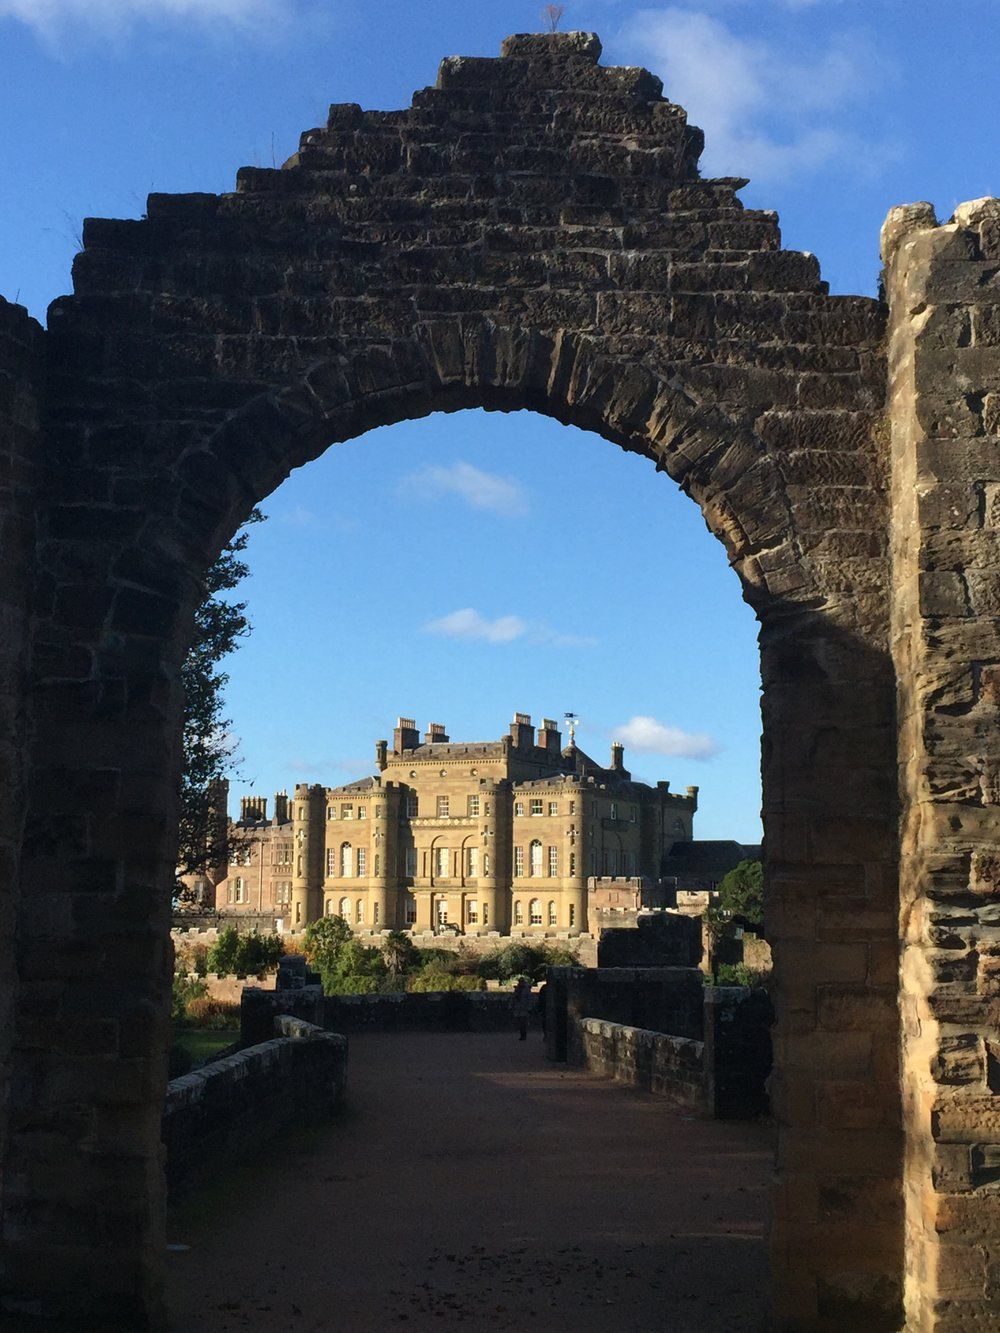 Culzean Castle, Ayreshire, Scotland